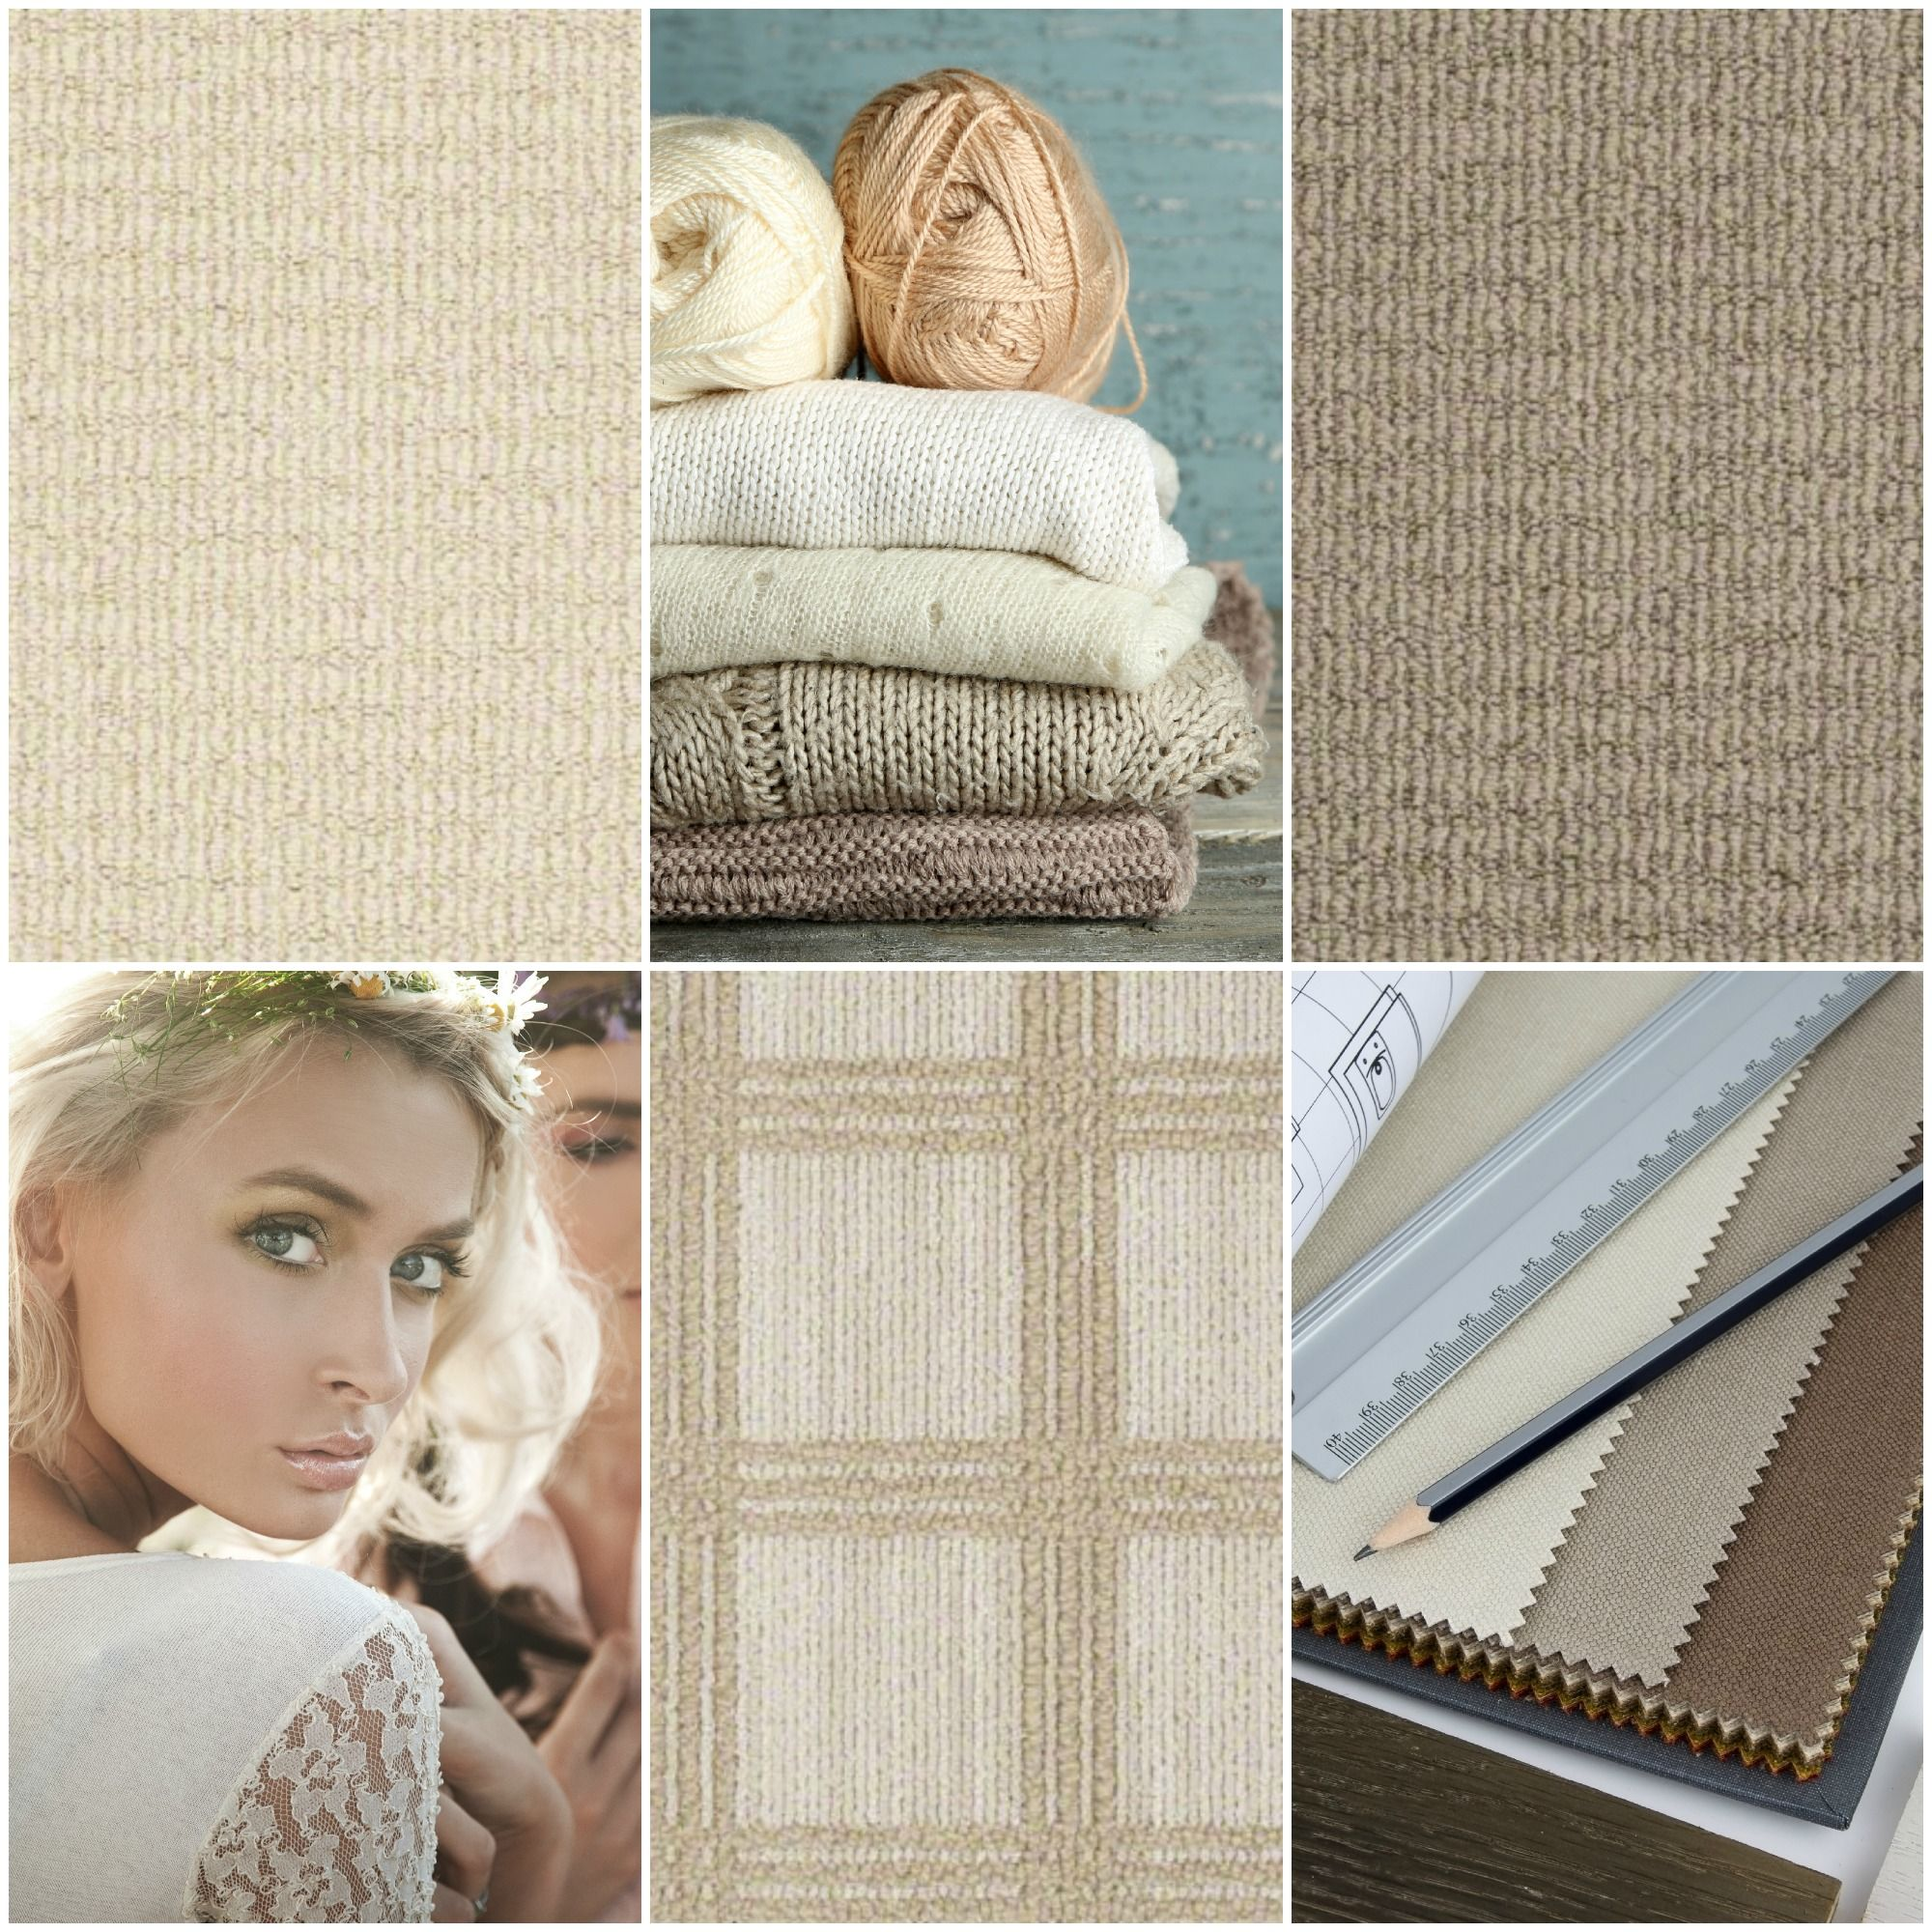 These Textural Loop Carpets Delightful Dream And Madera Are Shown In Some Nice Neutral Hues Tuftex Carpets Of Califor Textured Carpet Beautiful Carpet Carpet